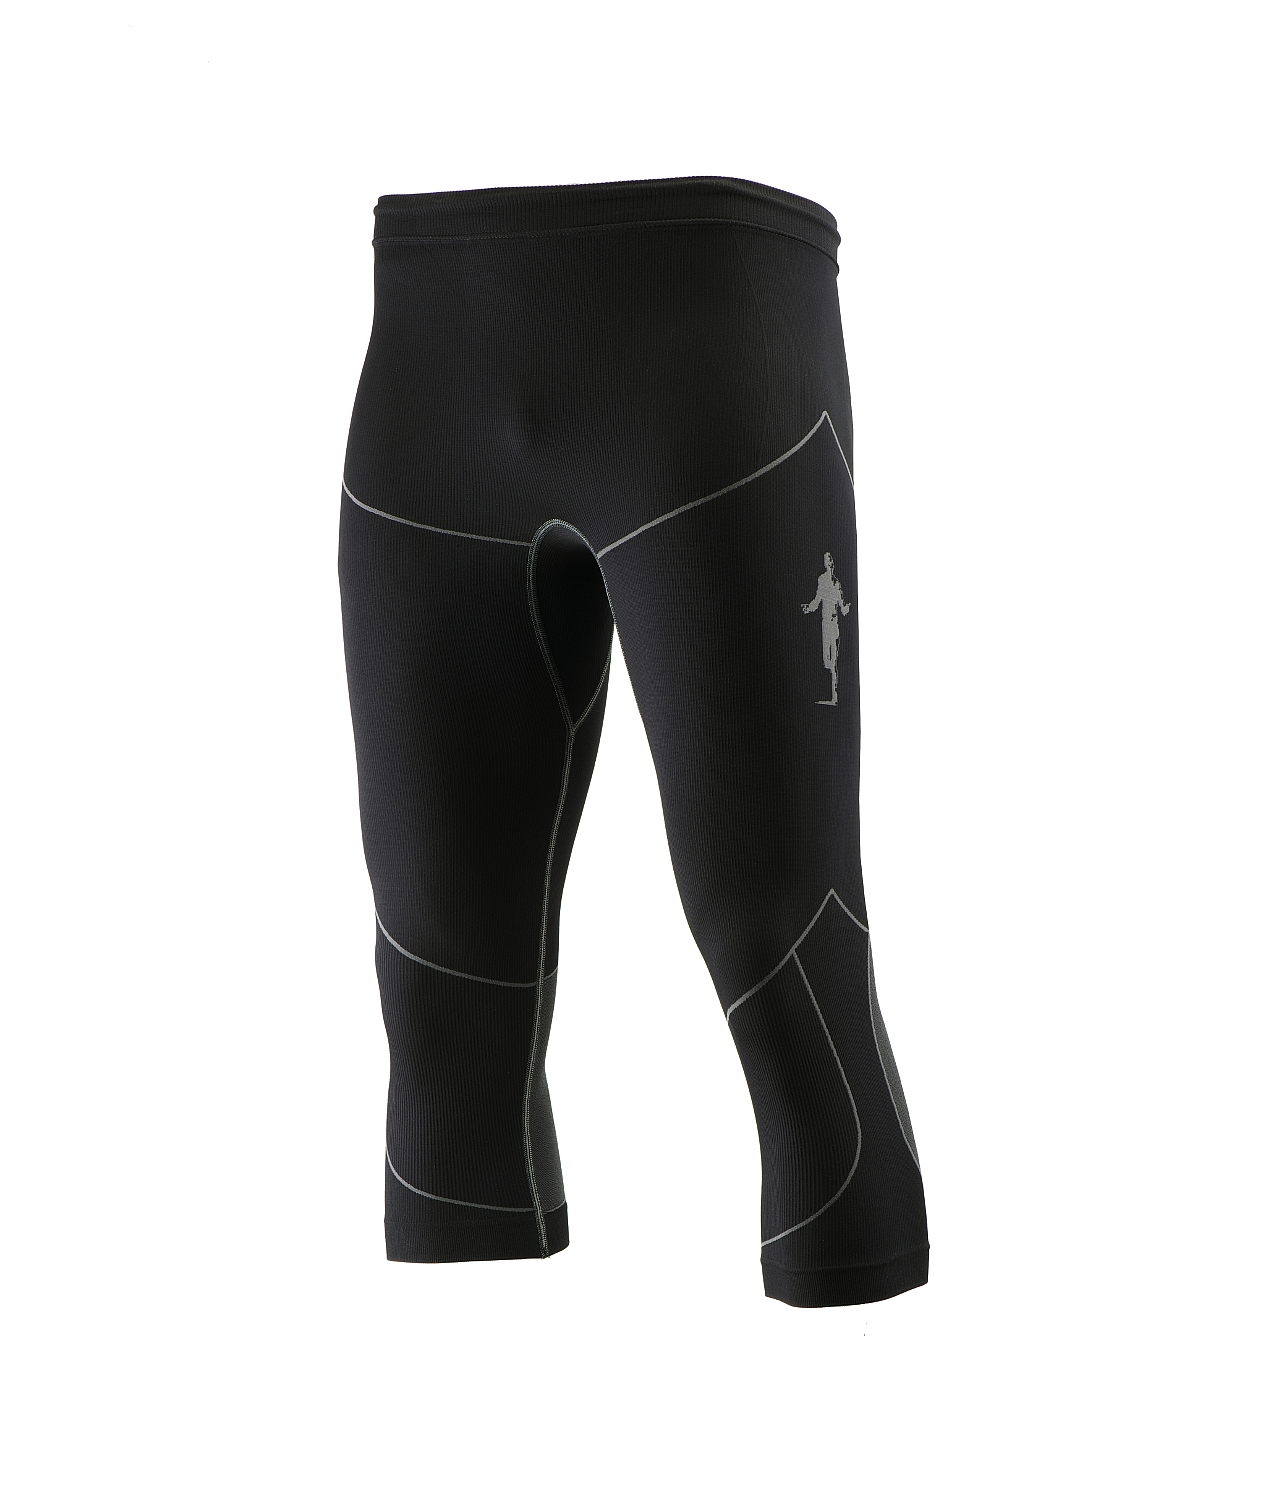 unisex 3_4 Tight schwarz